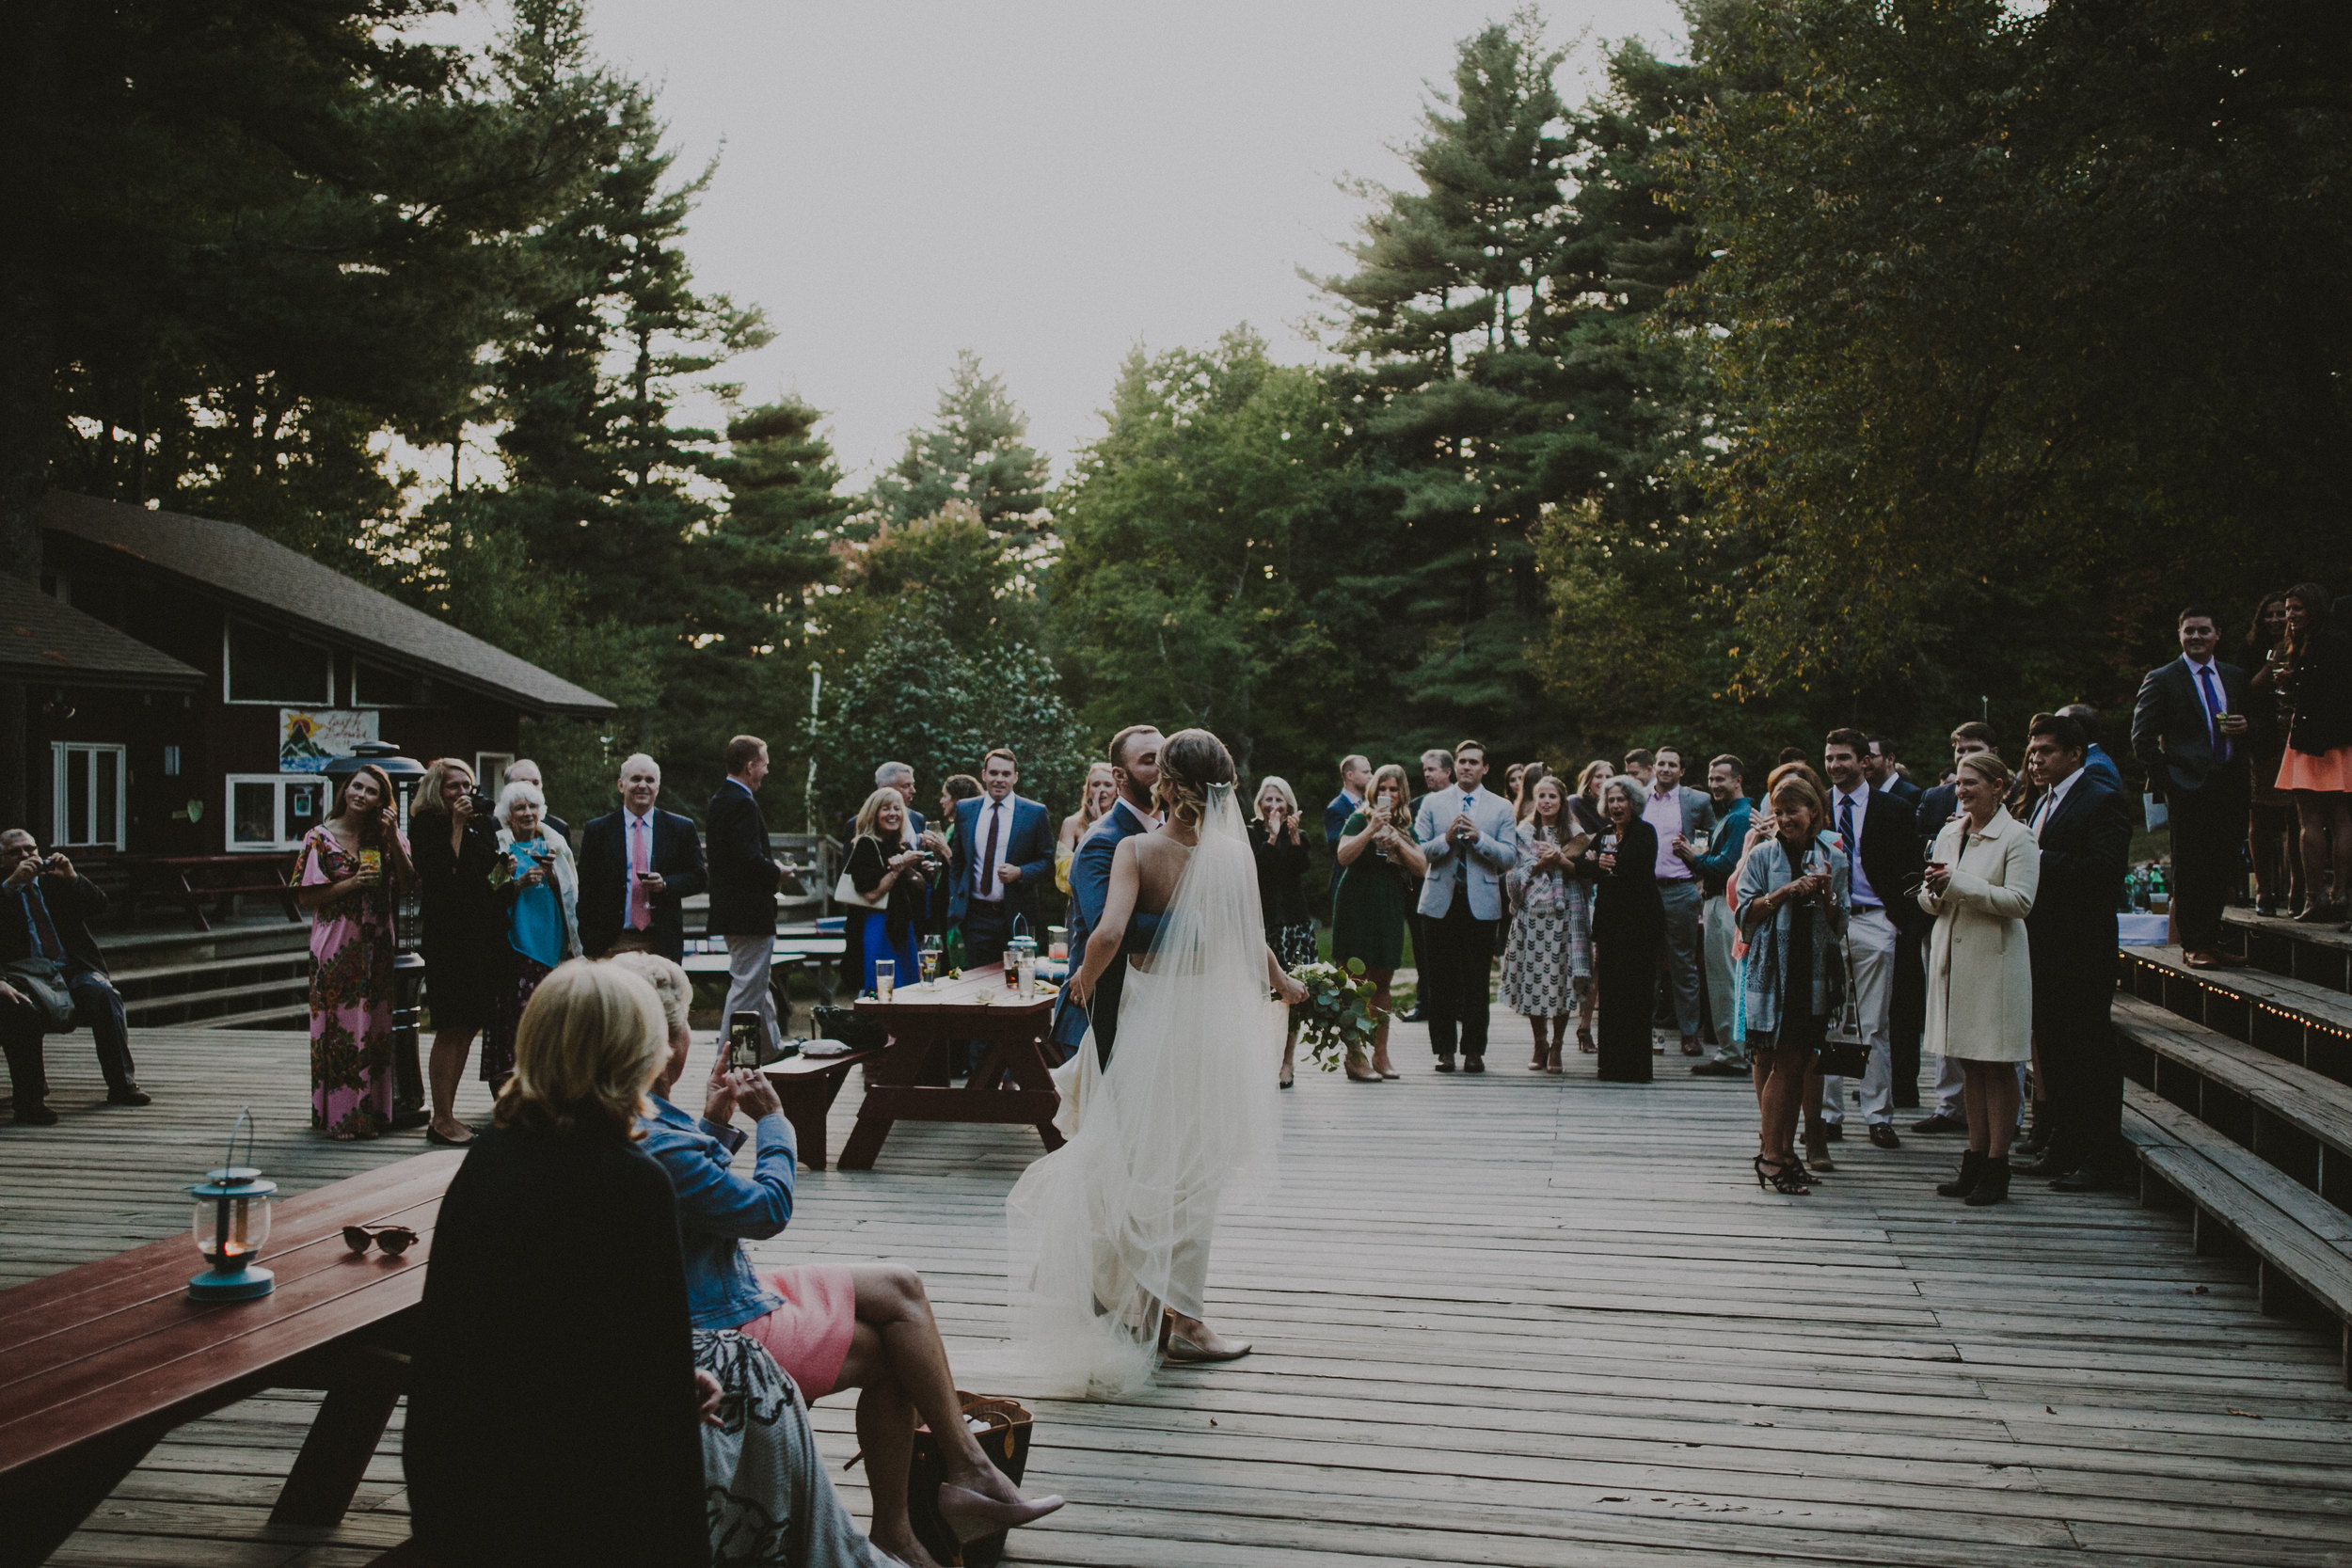 windsor mountain summer camp wedding NH chellise michael photography 1820.jpg